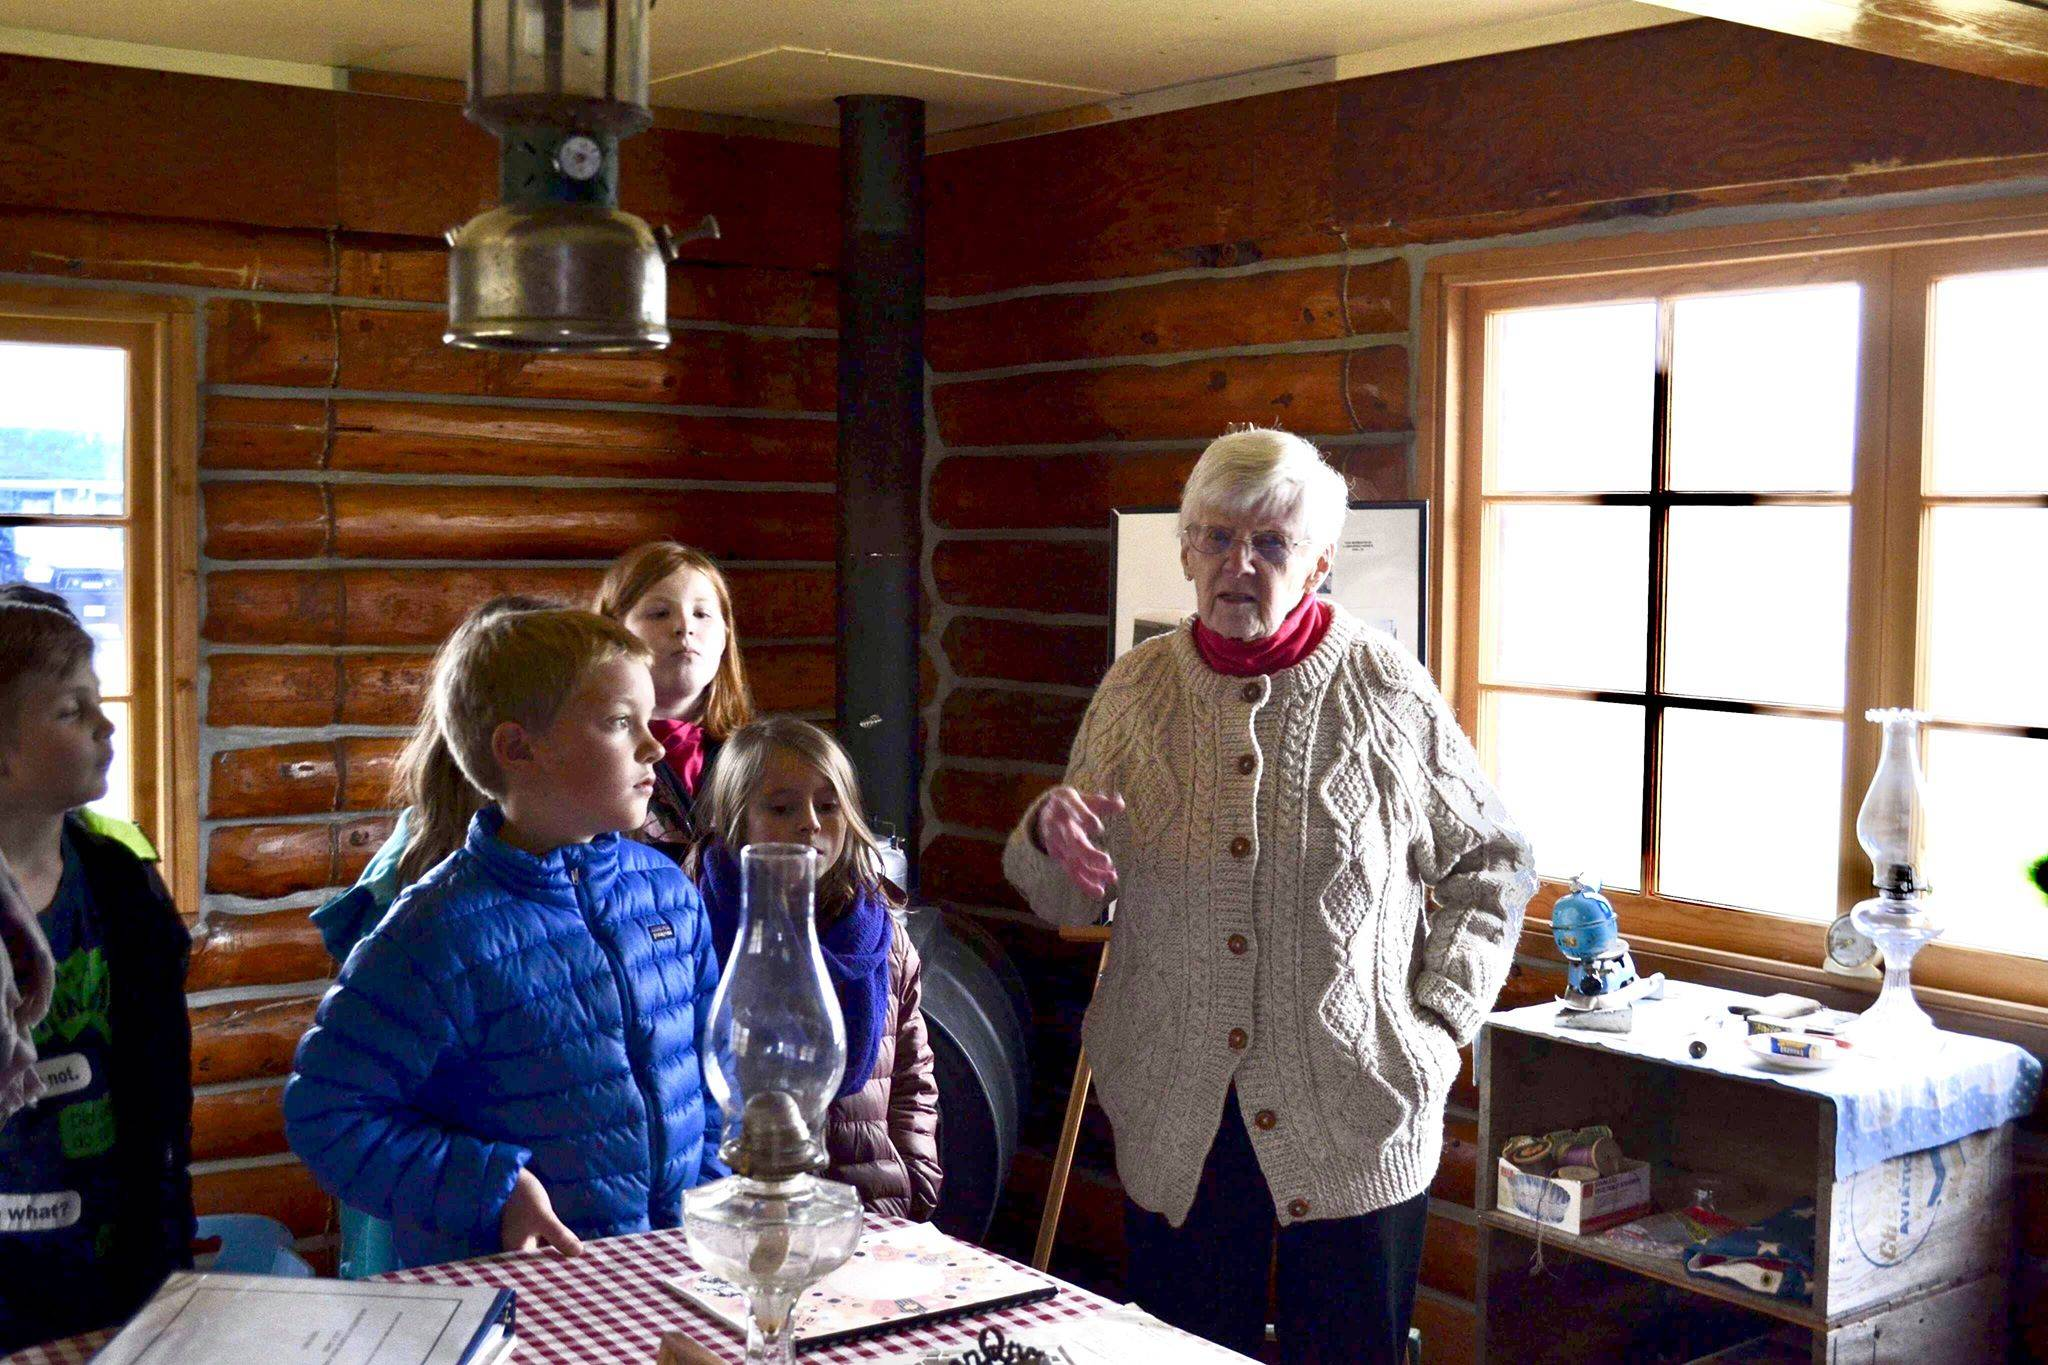 Marge Mullen shows a group of third graders around the Howard Lee Homestead, which was used as the city's first post office when she first homesteaded in Soldotna, on Wednesday, oct. 17, 2018, in Soldotna, AK. (Photo by Victoria Petersen/Peninsula Clarion)